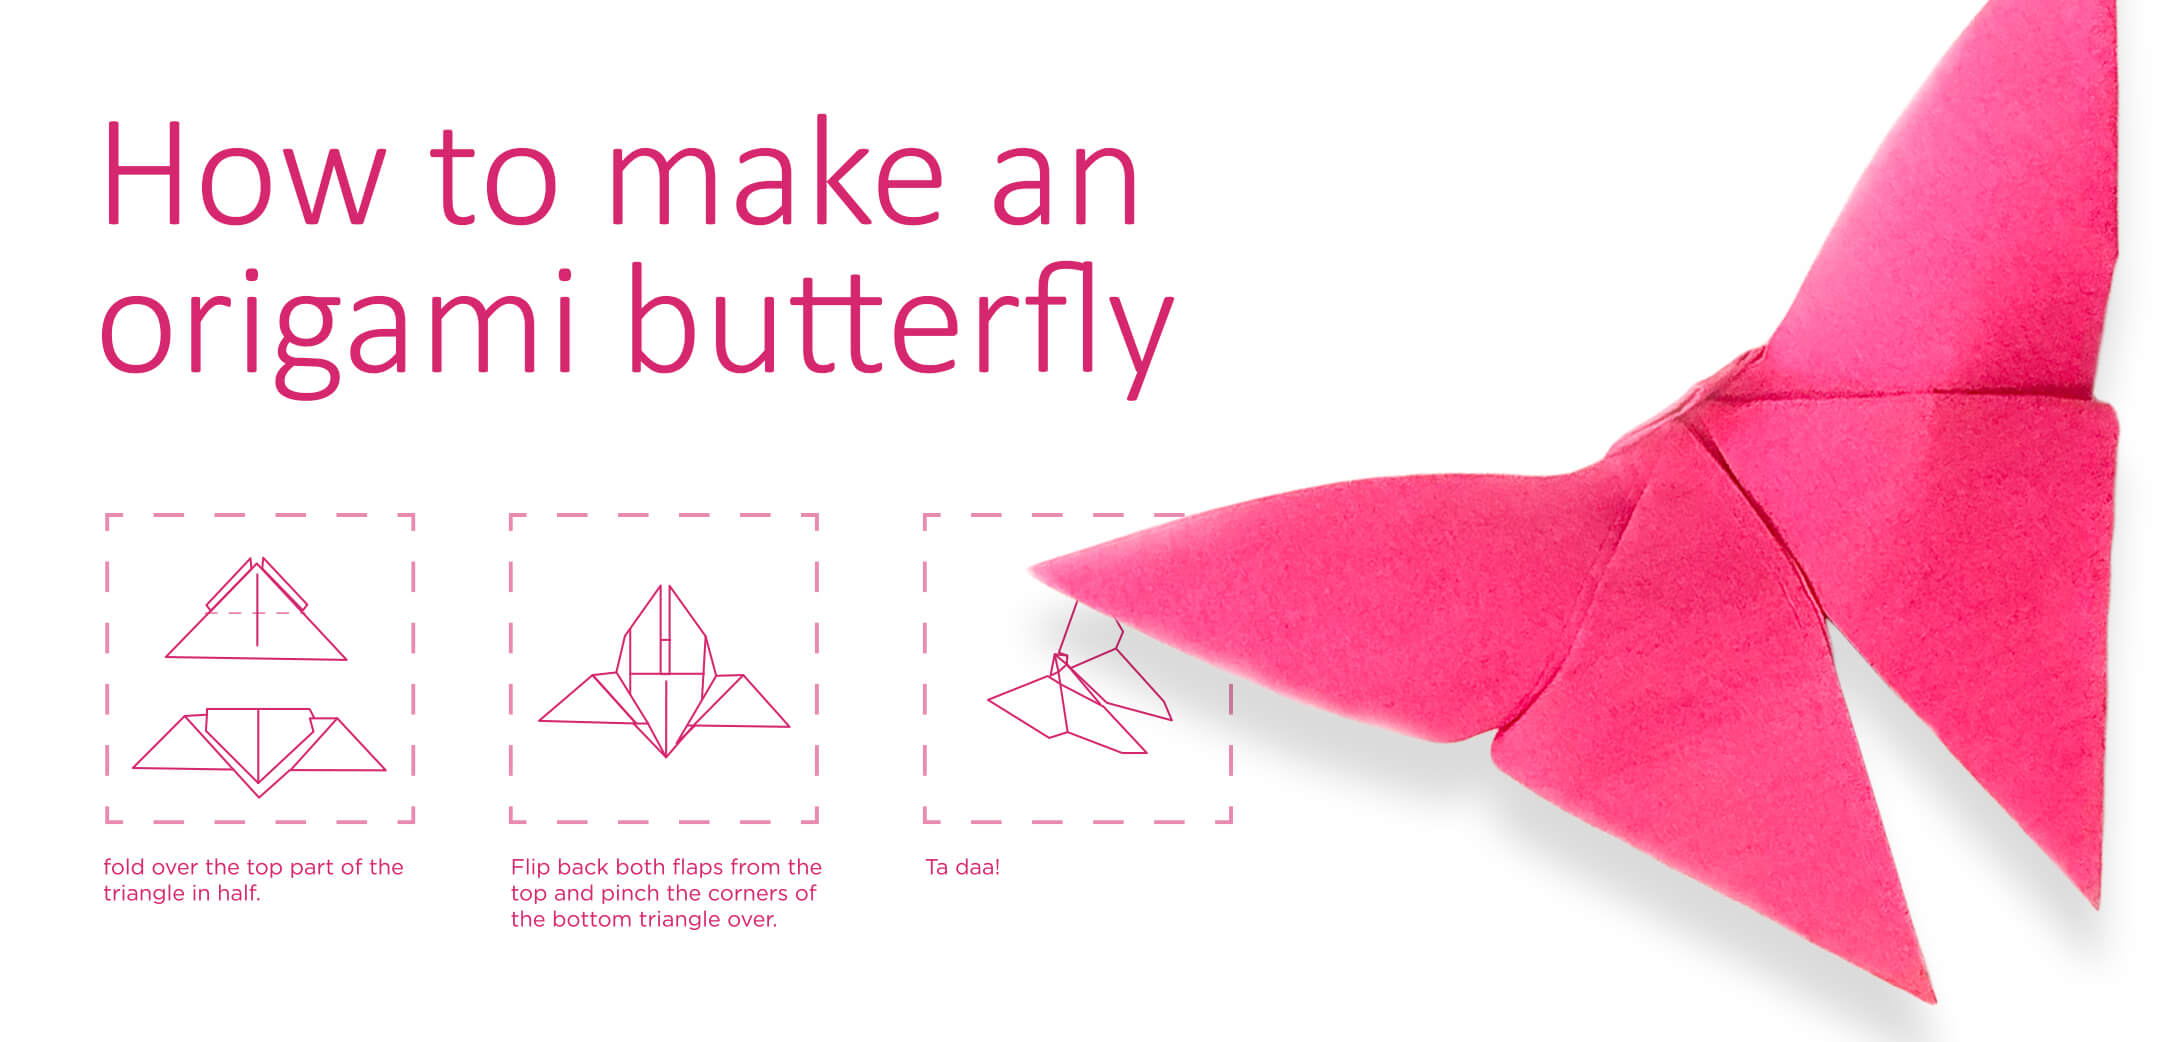 A step by step guide to creating an  origami butterfly out of a post-it.